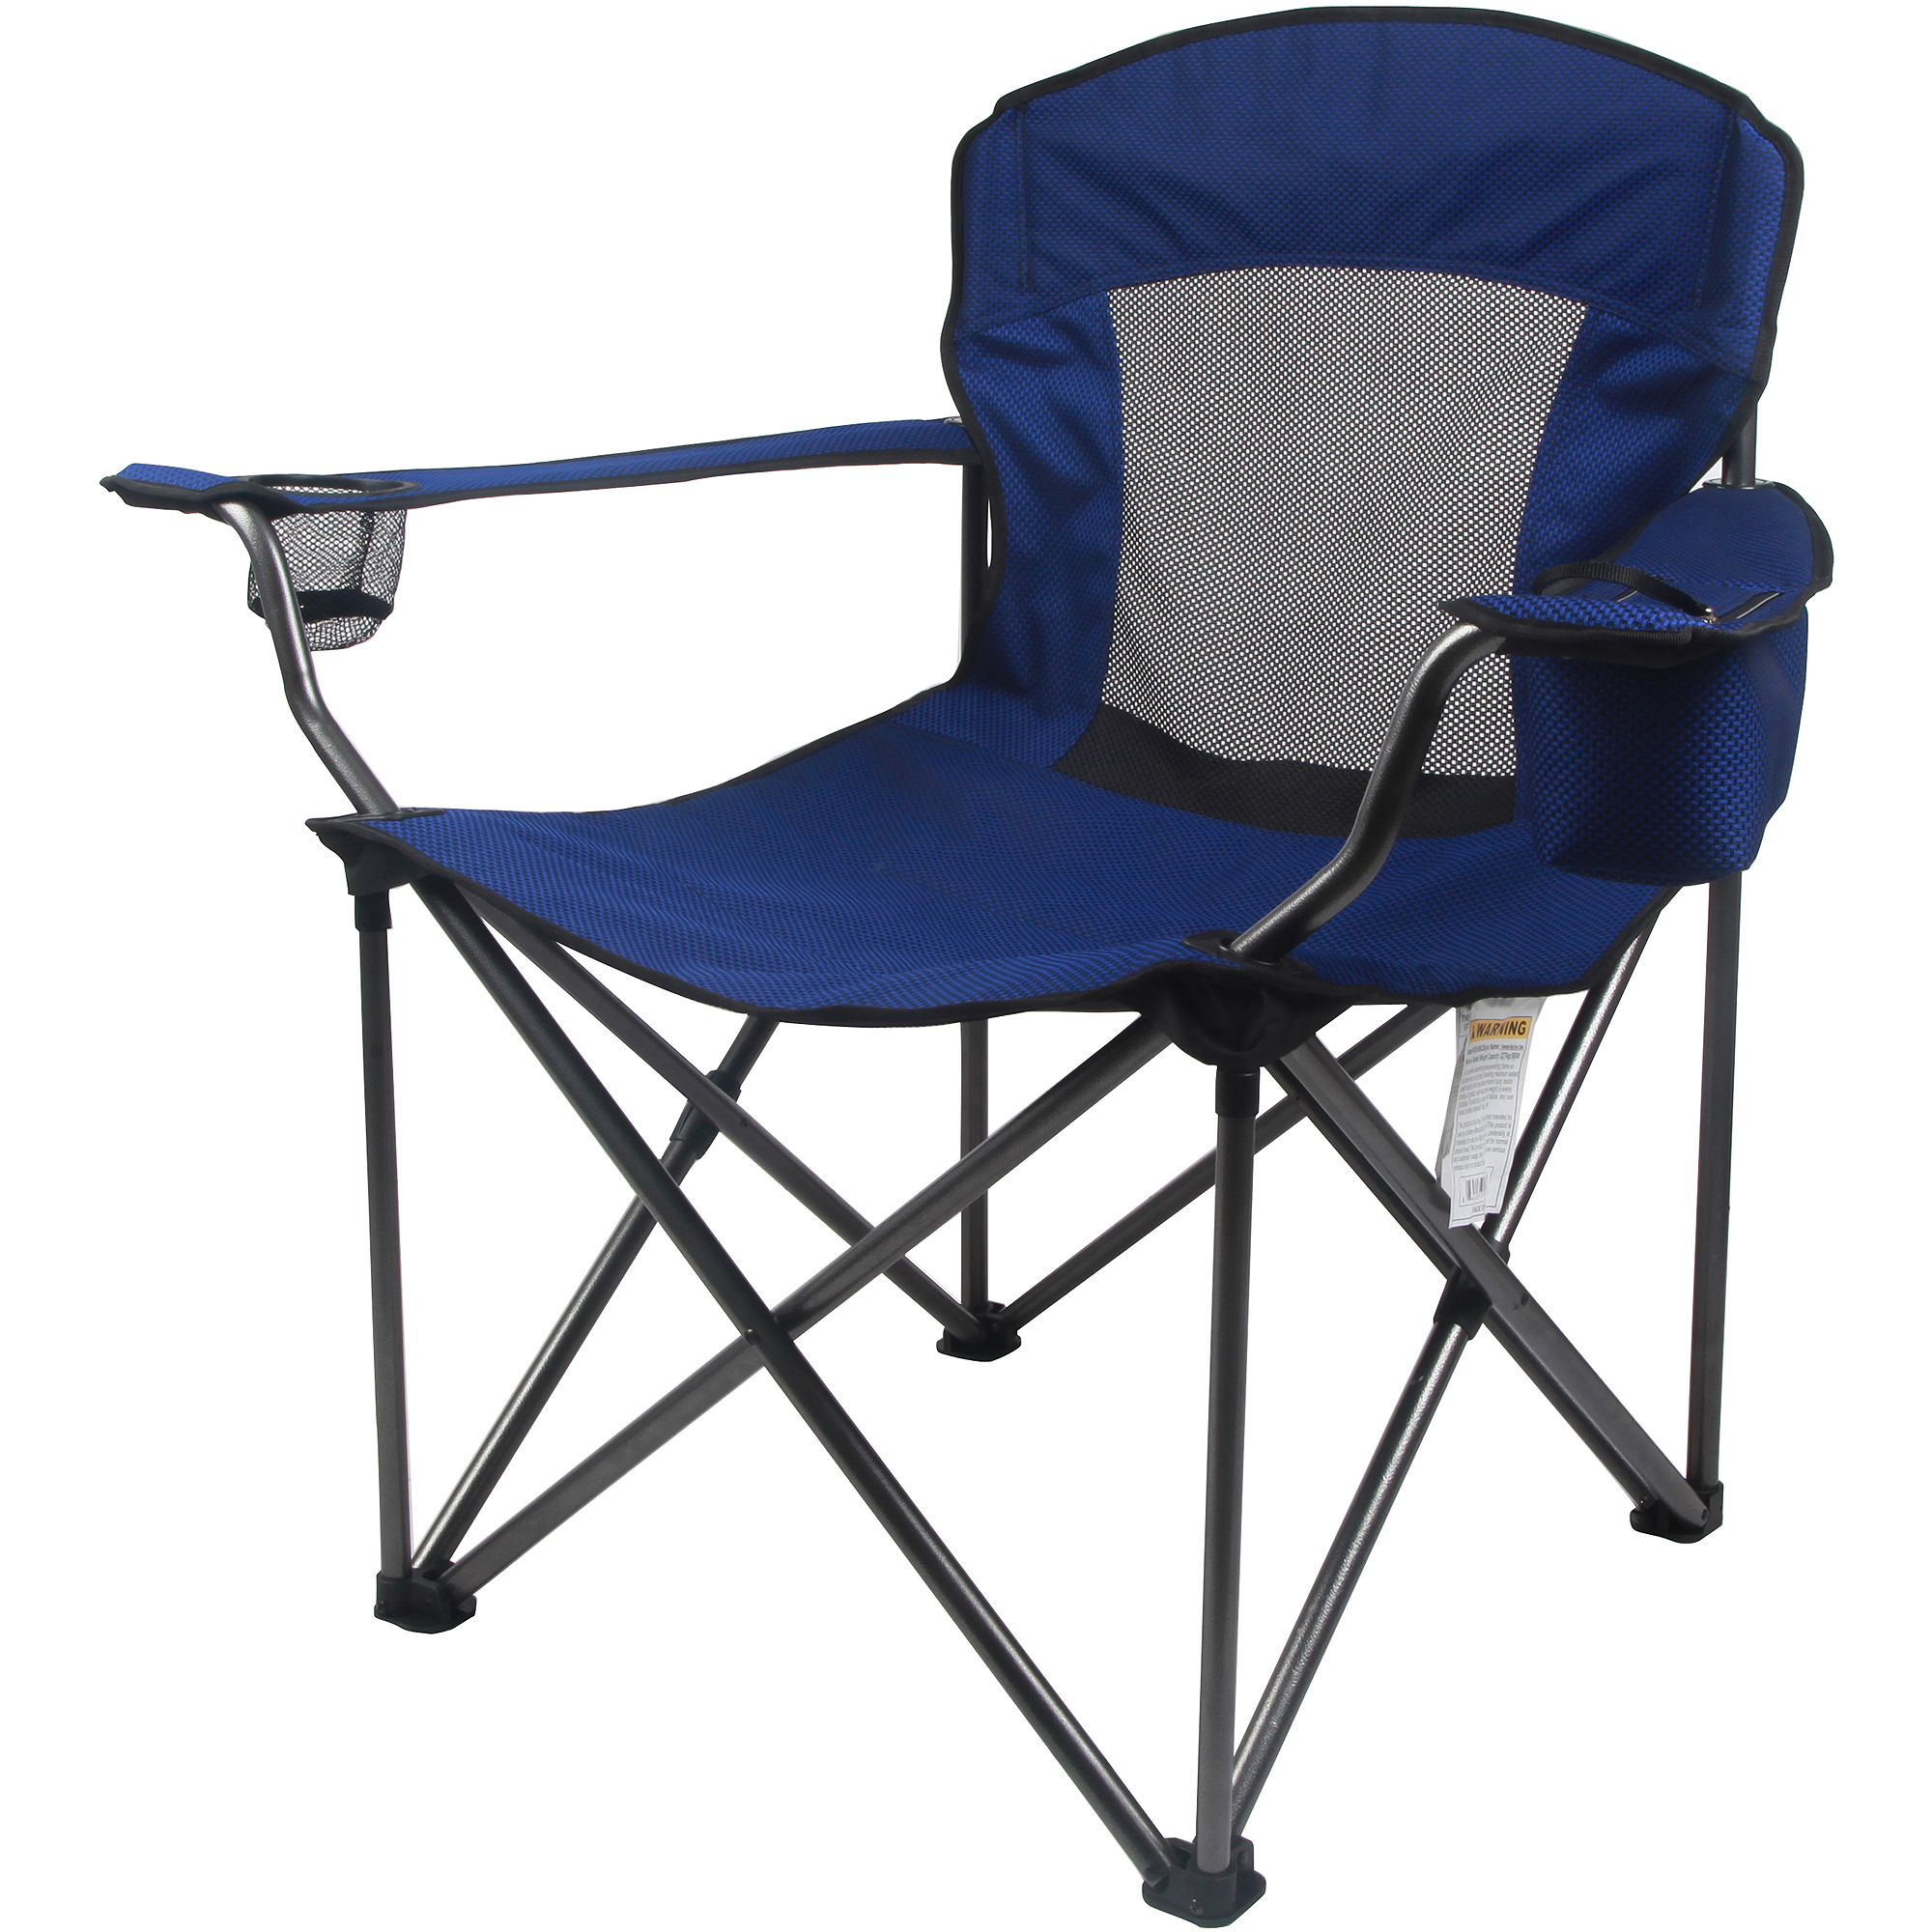 Trail Chair Ozark Trail Deluxe Folding Camping Arm Chair Walmart